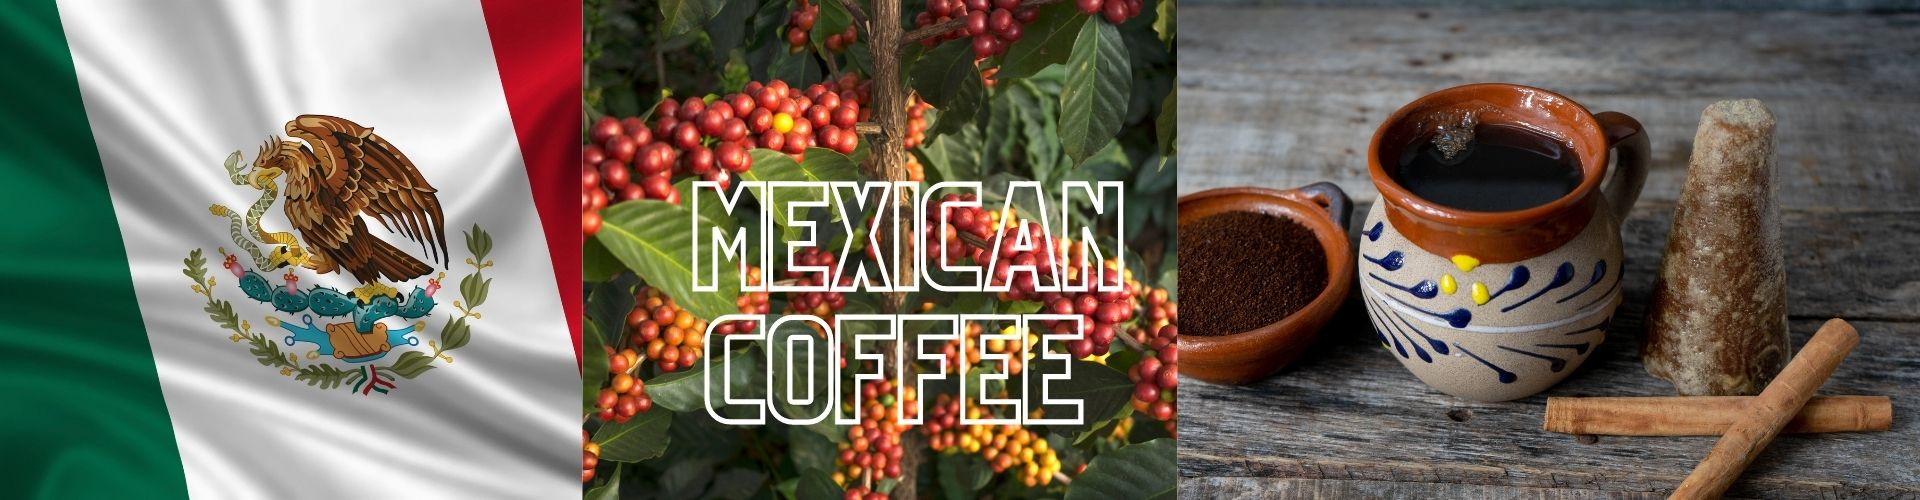 mexican coffee banner image